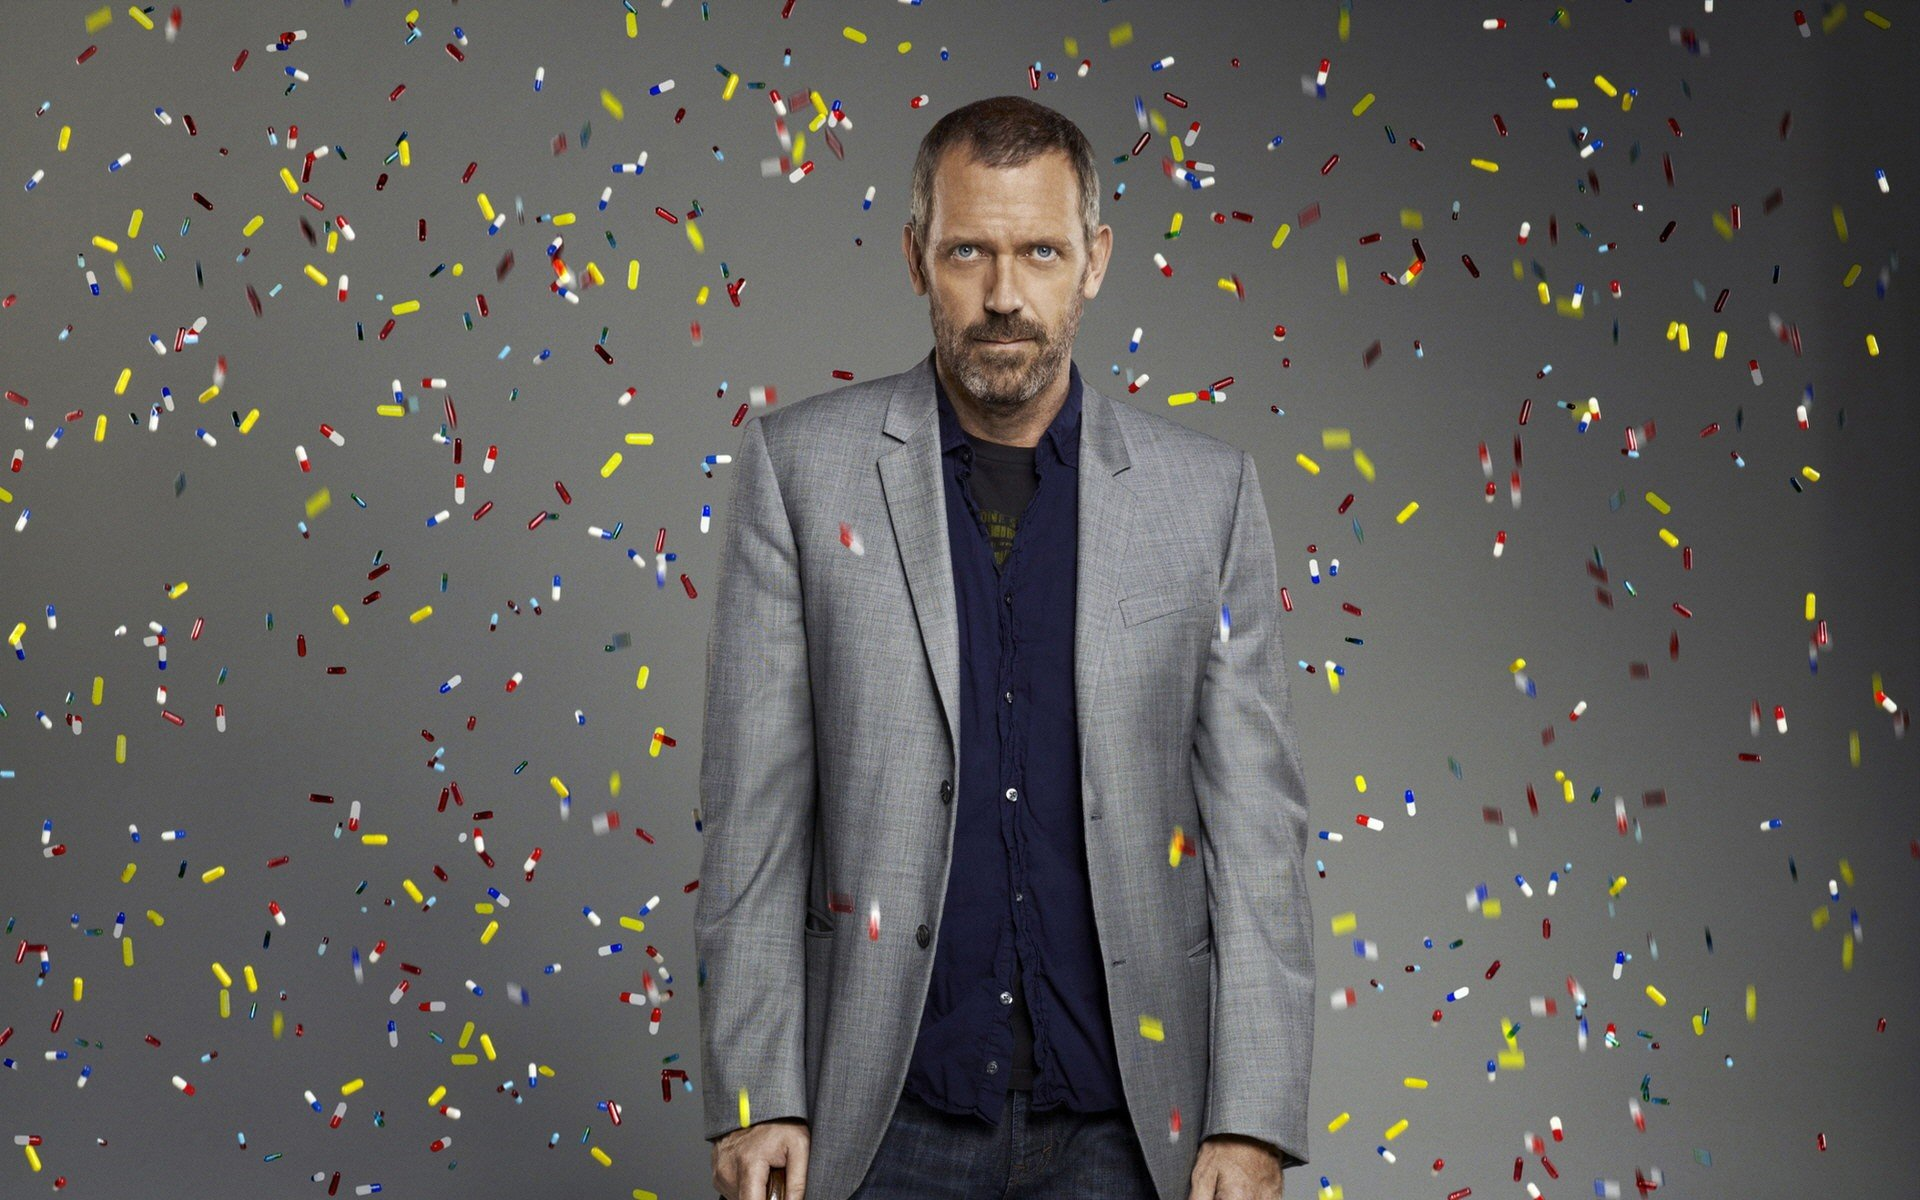 Awesome Dr. House free wallpaper ID:156733 for hd 1920x1200 desktop